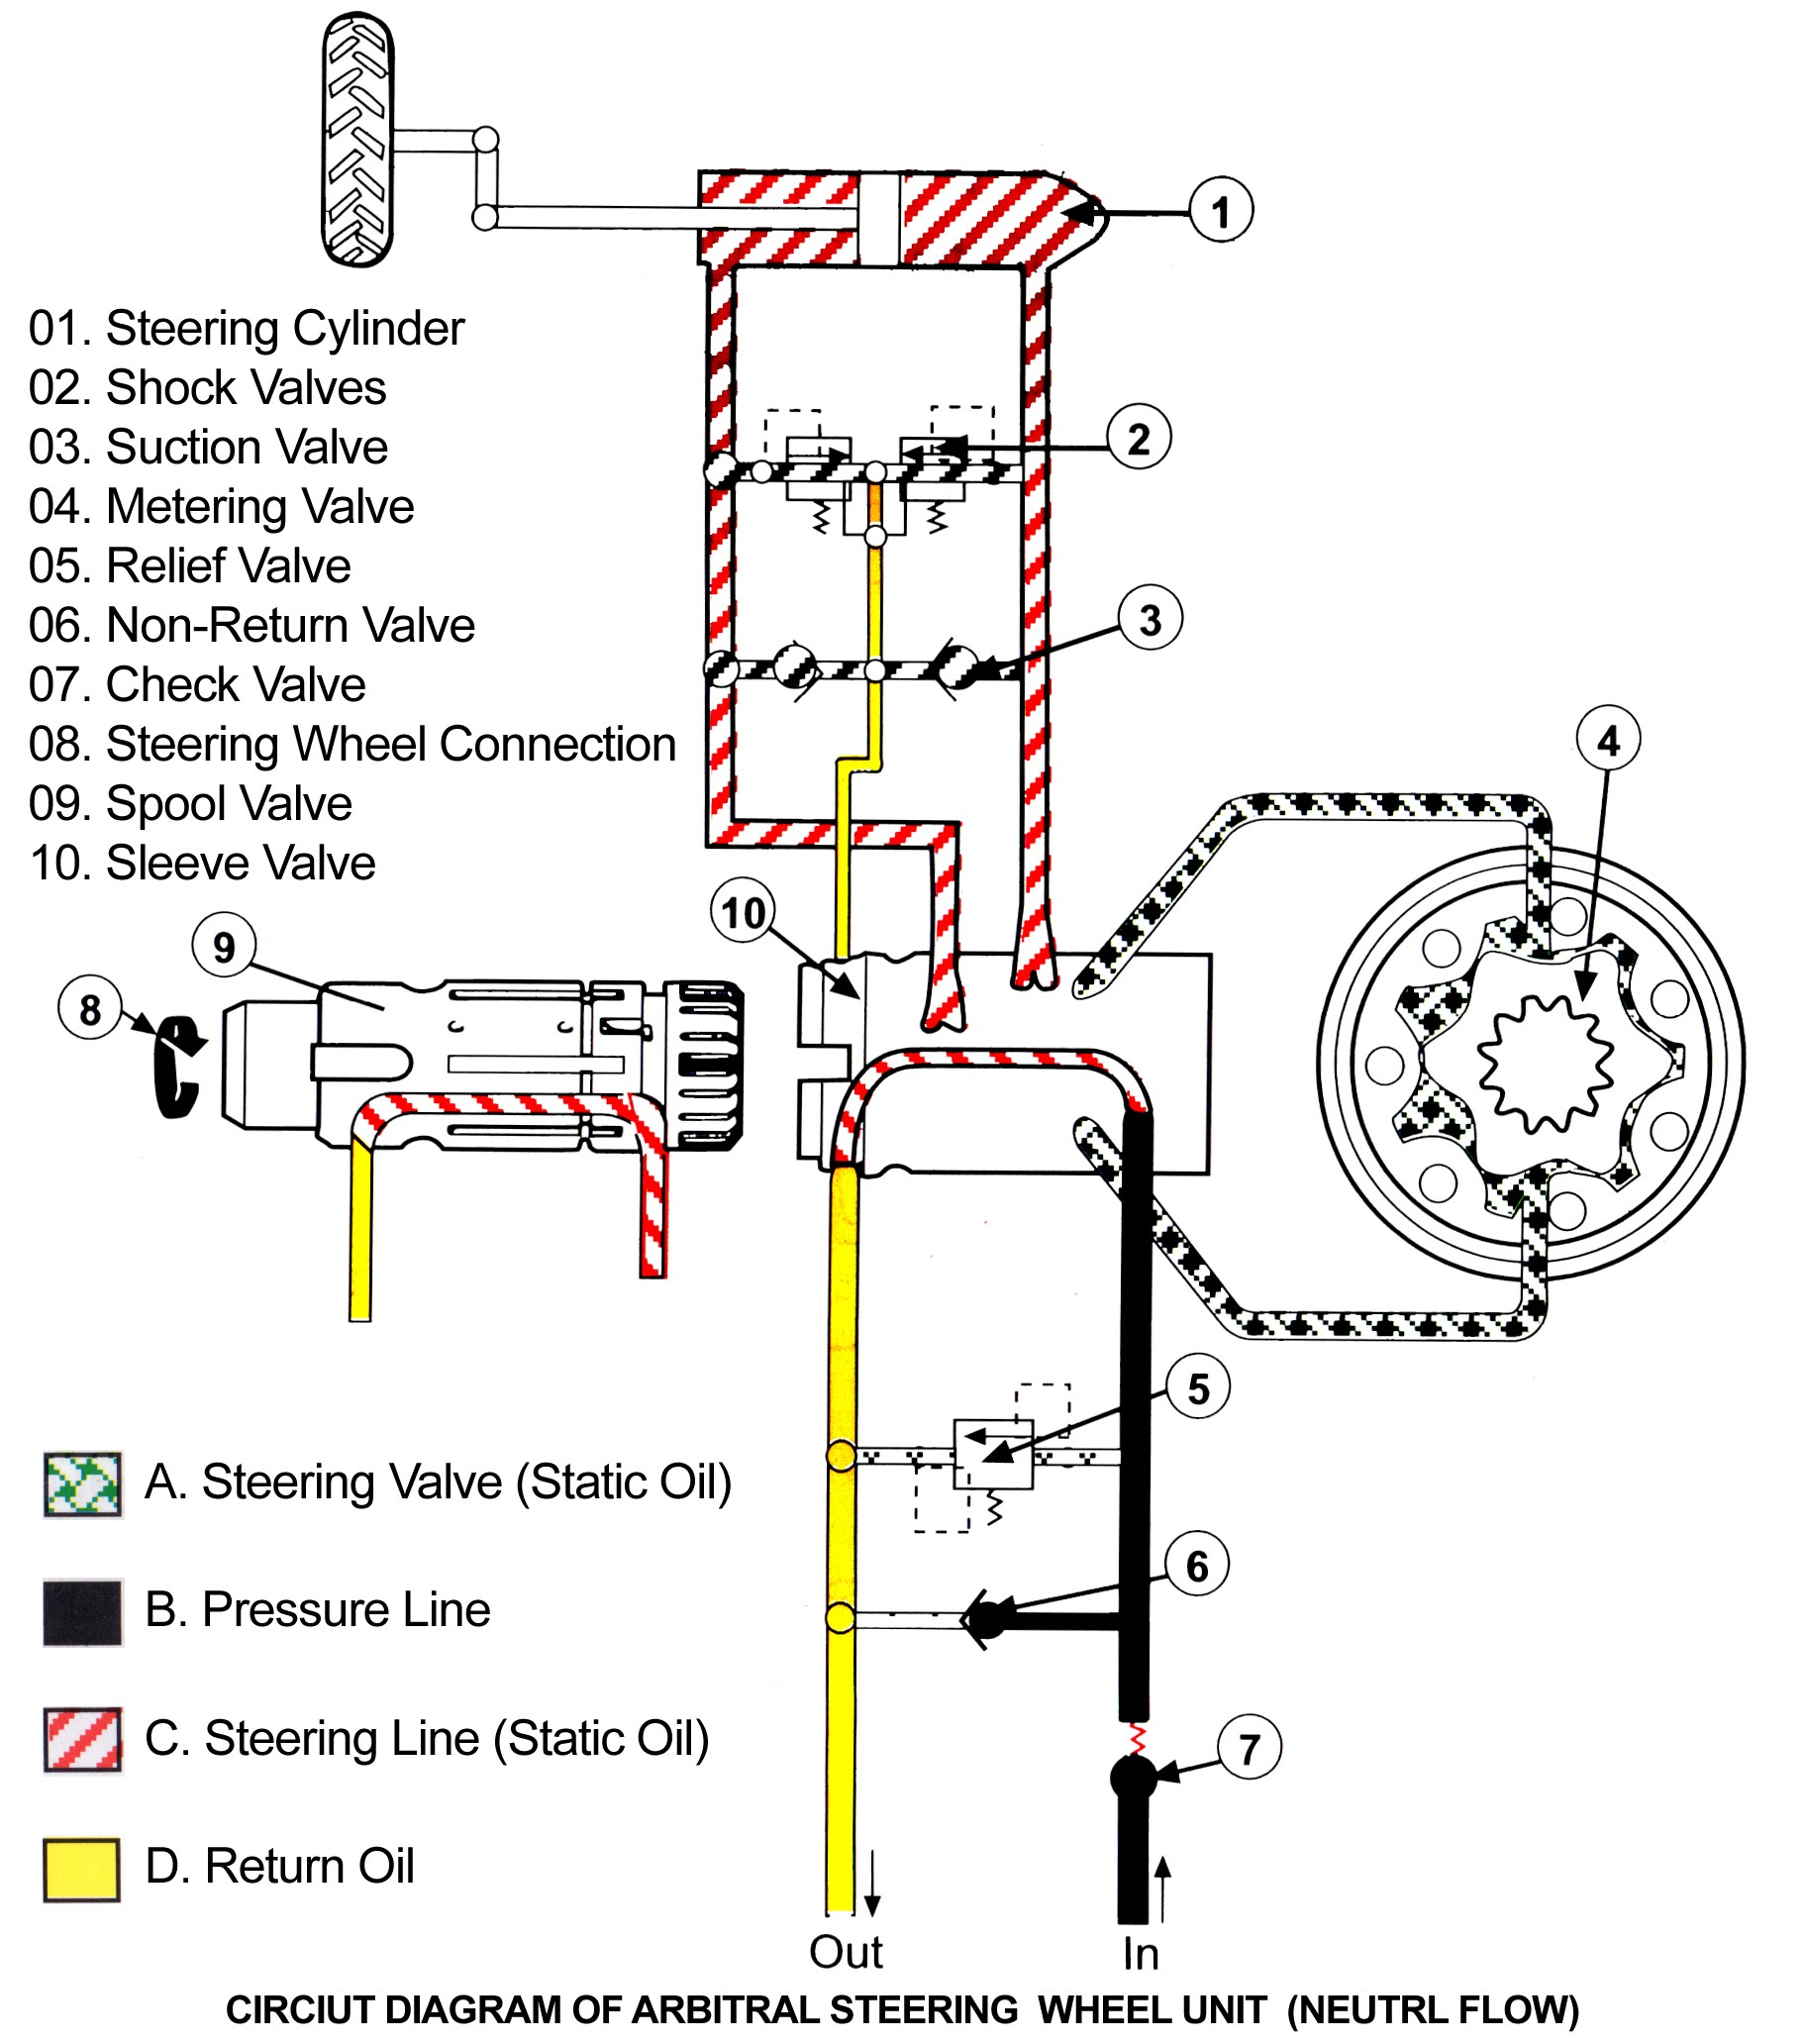 Power Steering Valve Diagram Product Wiring Diagrams \u2022 1965 Mustang  Steering 65 Mustang Power Steering Control Valve Diagram